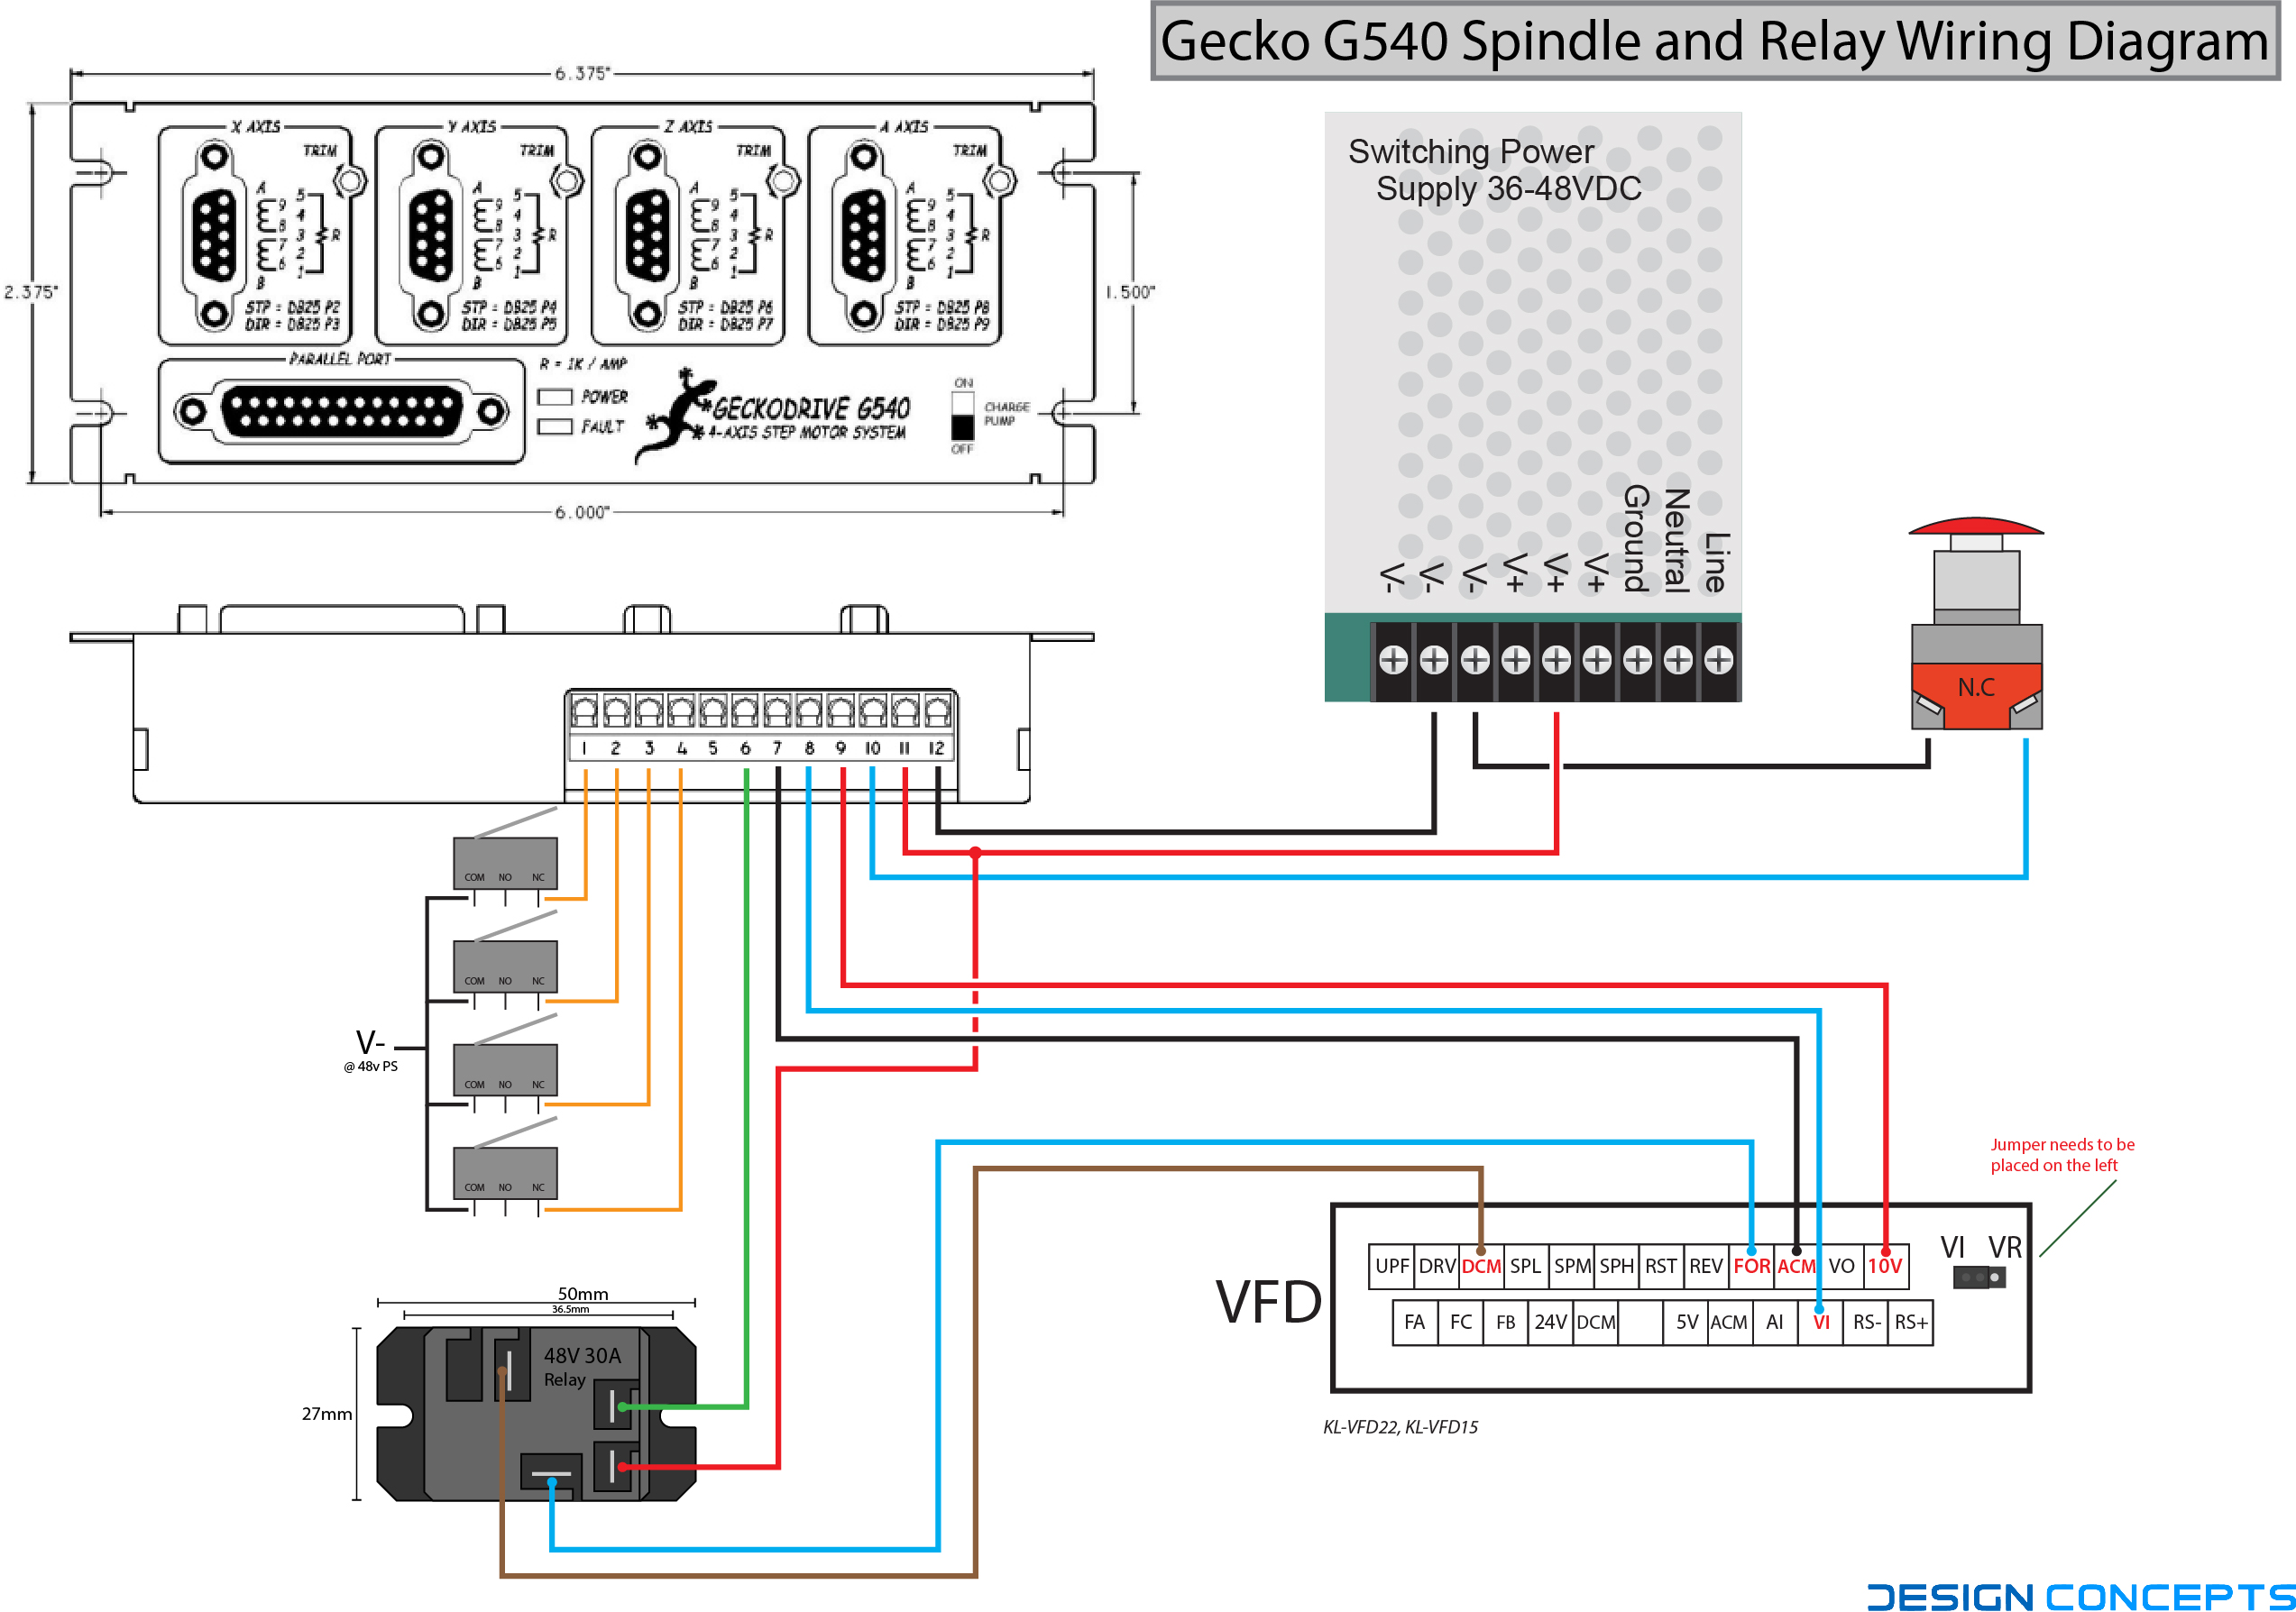 g540 spindle and relay wiring diagram the blog spindle wiring diagram g540 wiring diagram with spindle [ 2546 x 1788 Pixel ]